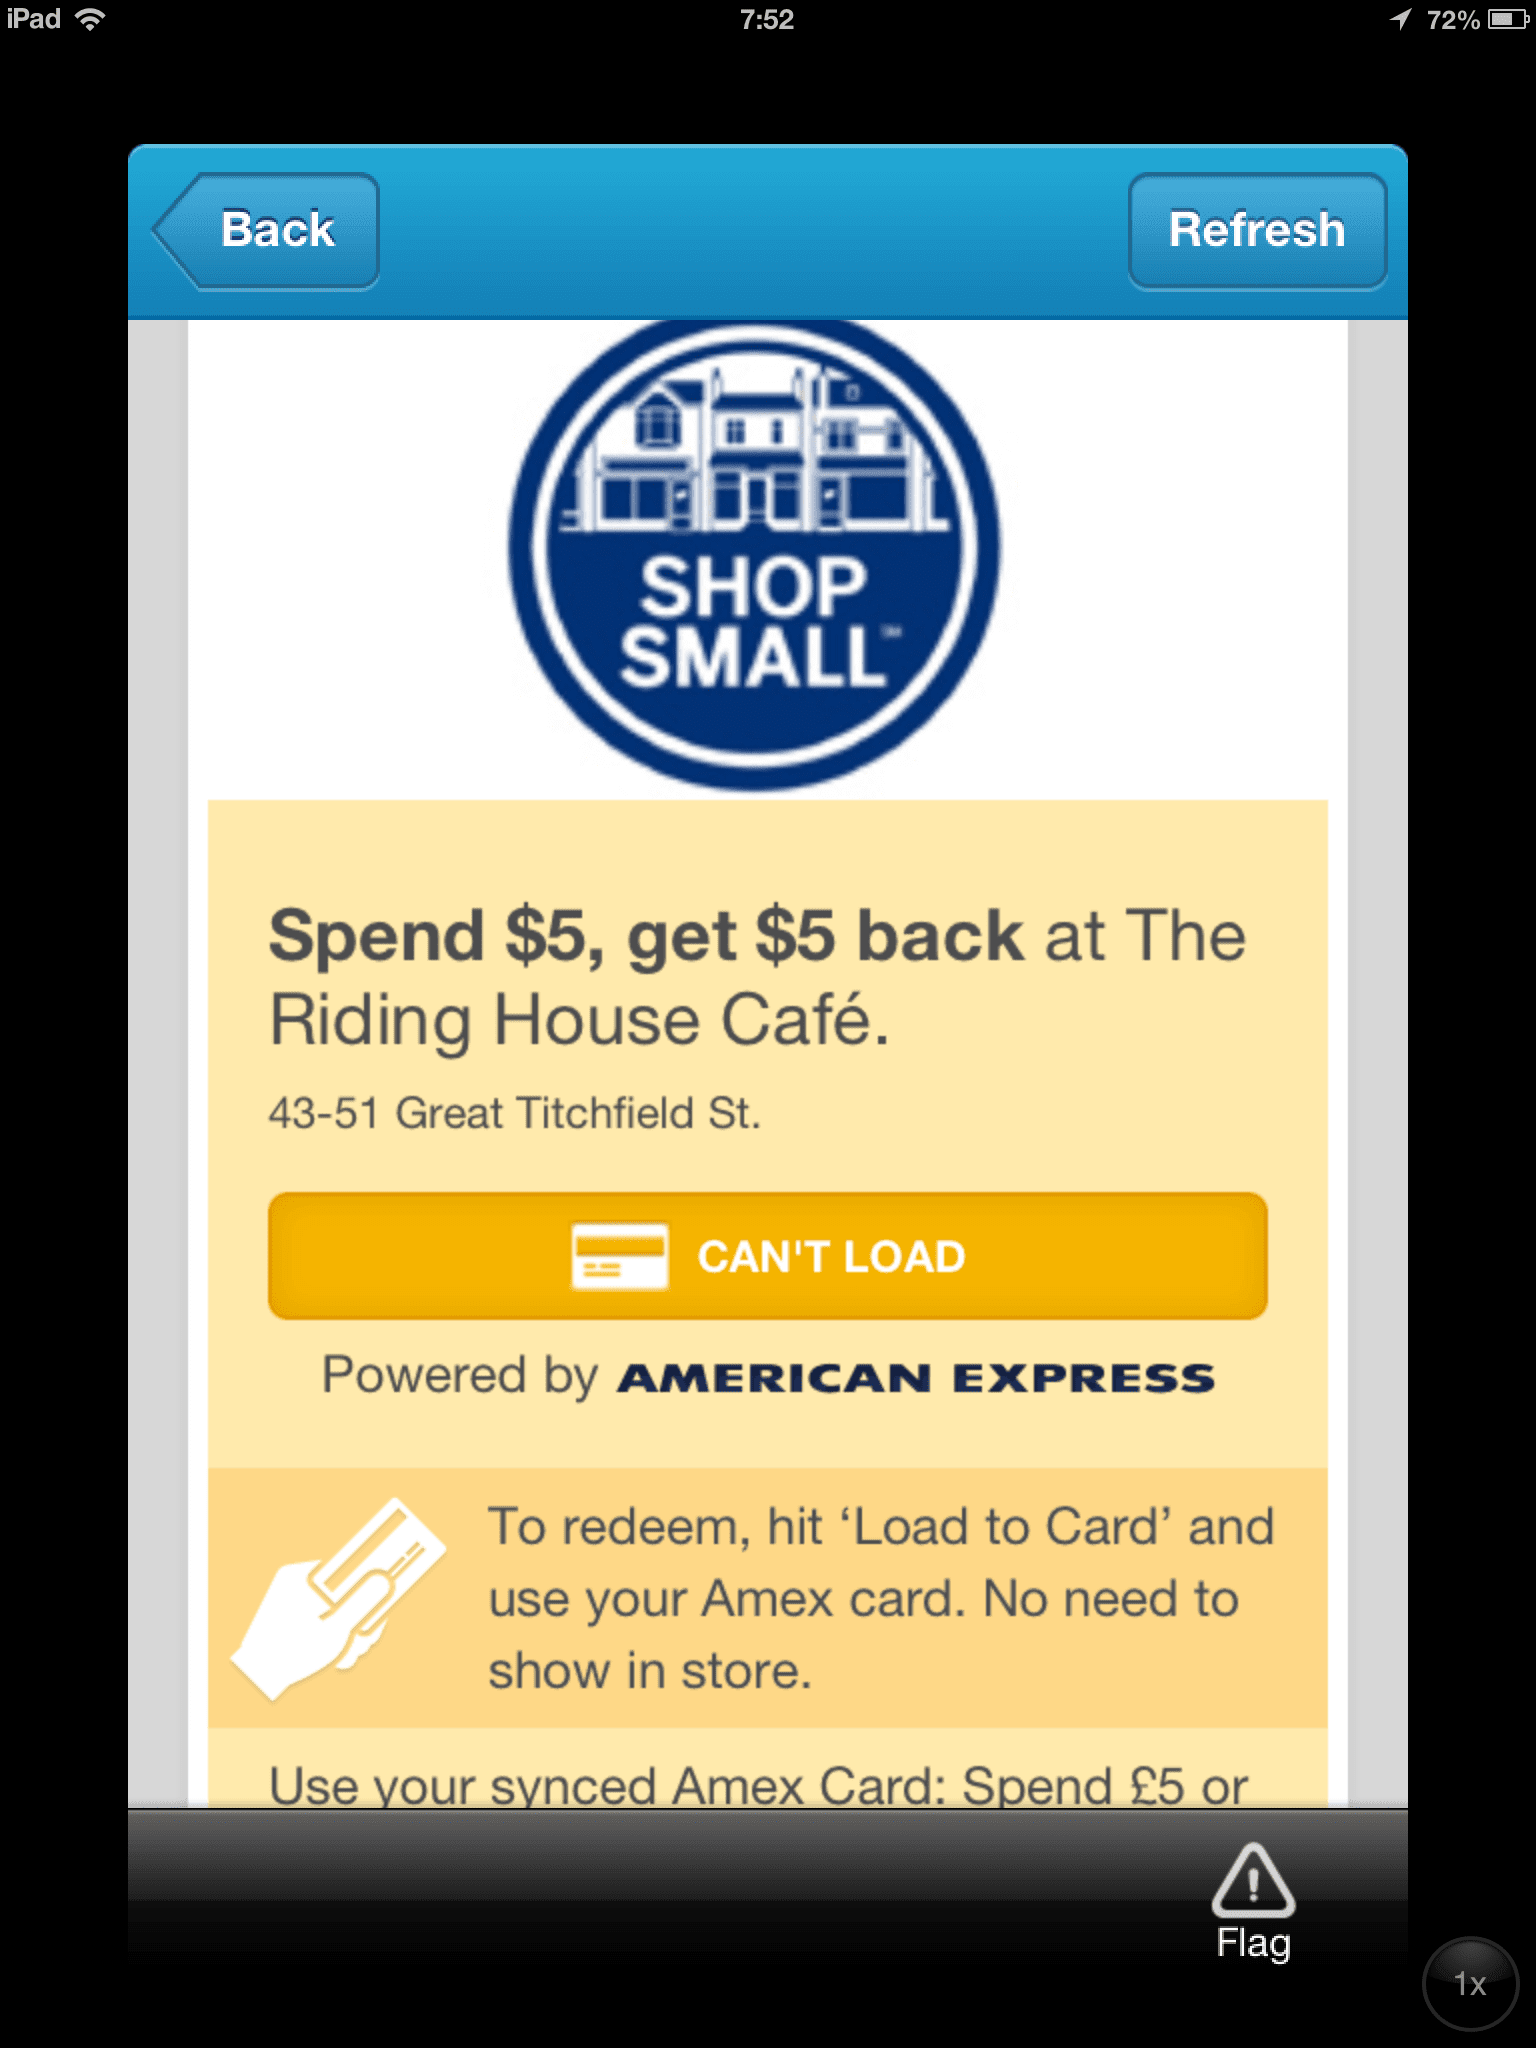 American Express Foursquare, The Myndset Digital Marketing and Brand Strategy